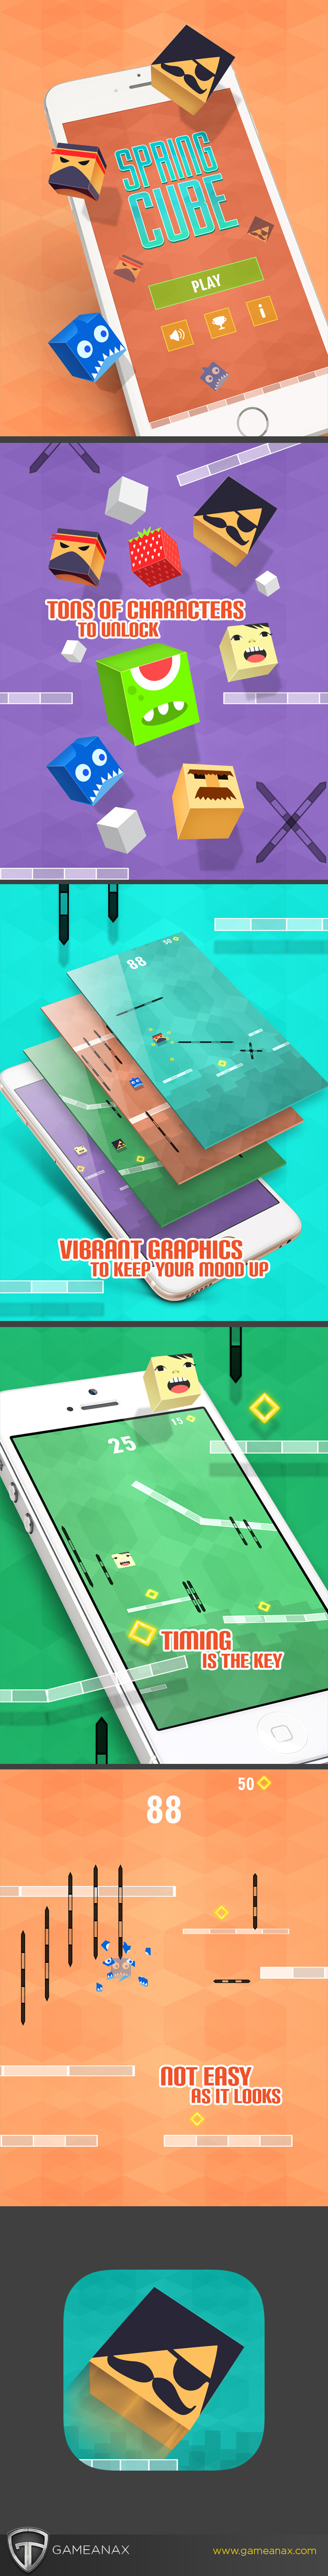 UI ux Buildbox game gamedesign graphics design ios android characters